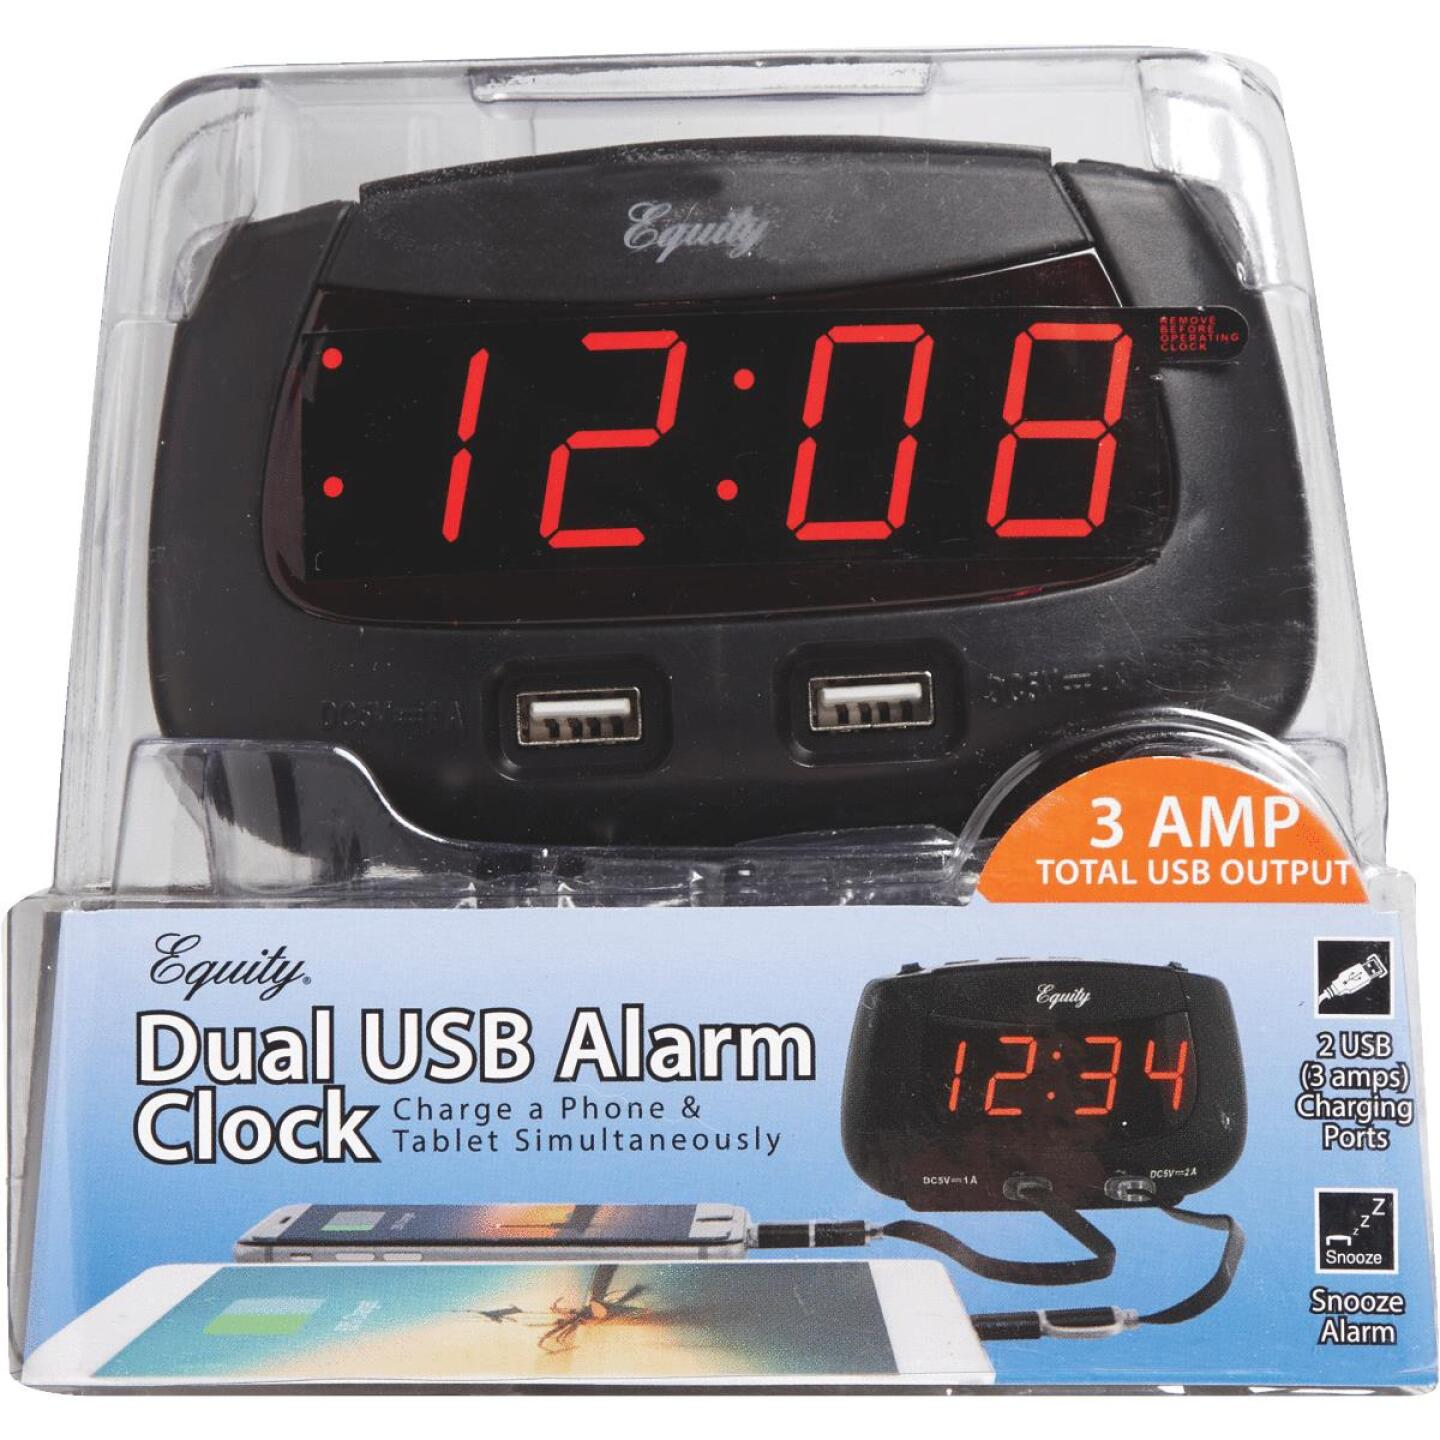 La Crosse Technology Equity Dual USB Electric Alarm Clock Image 2